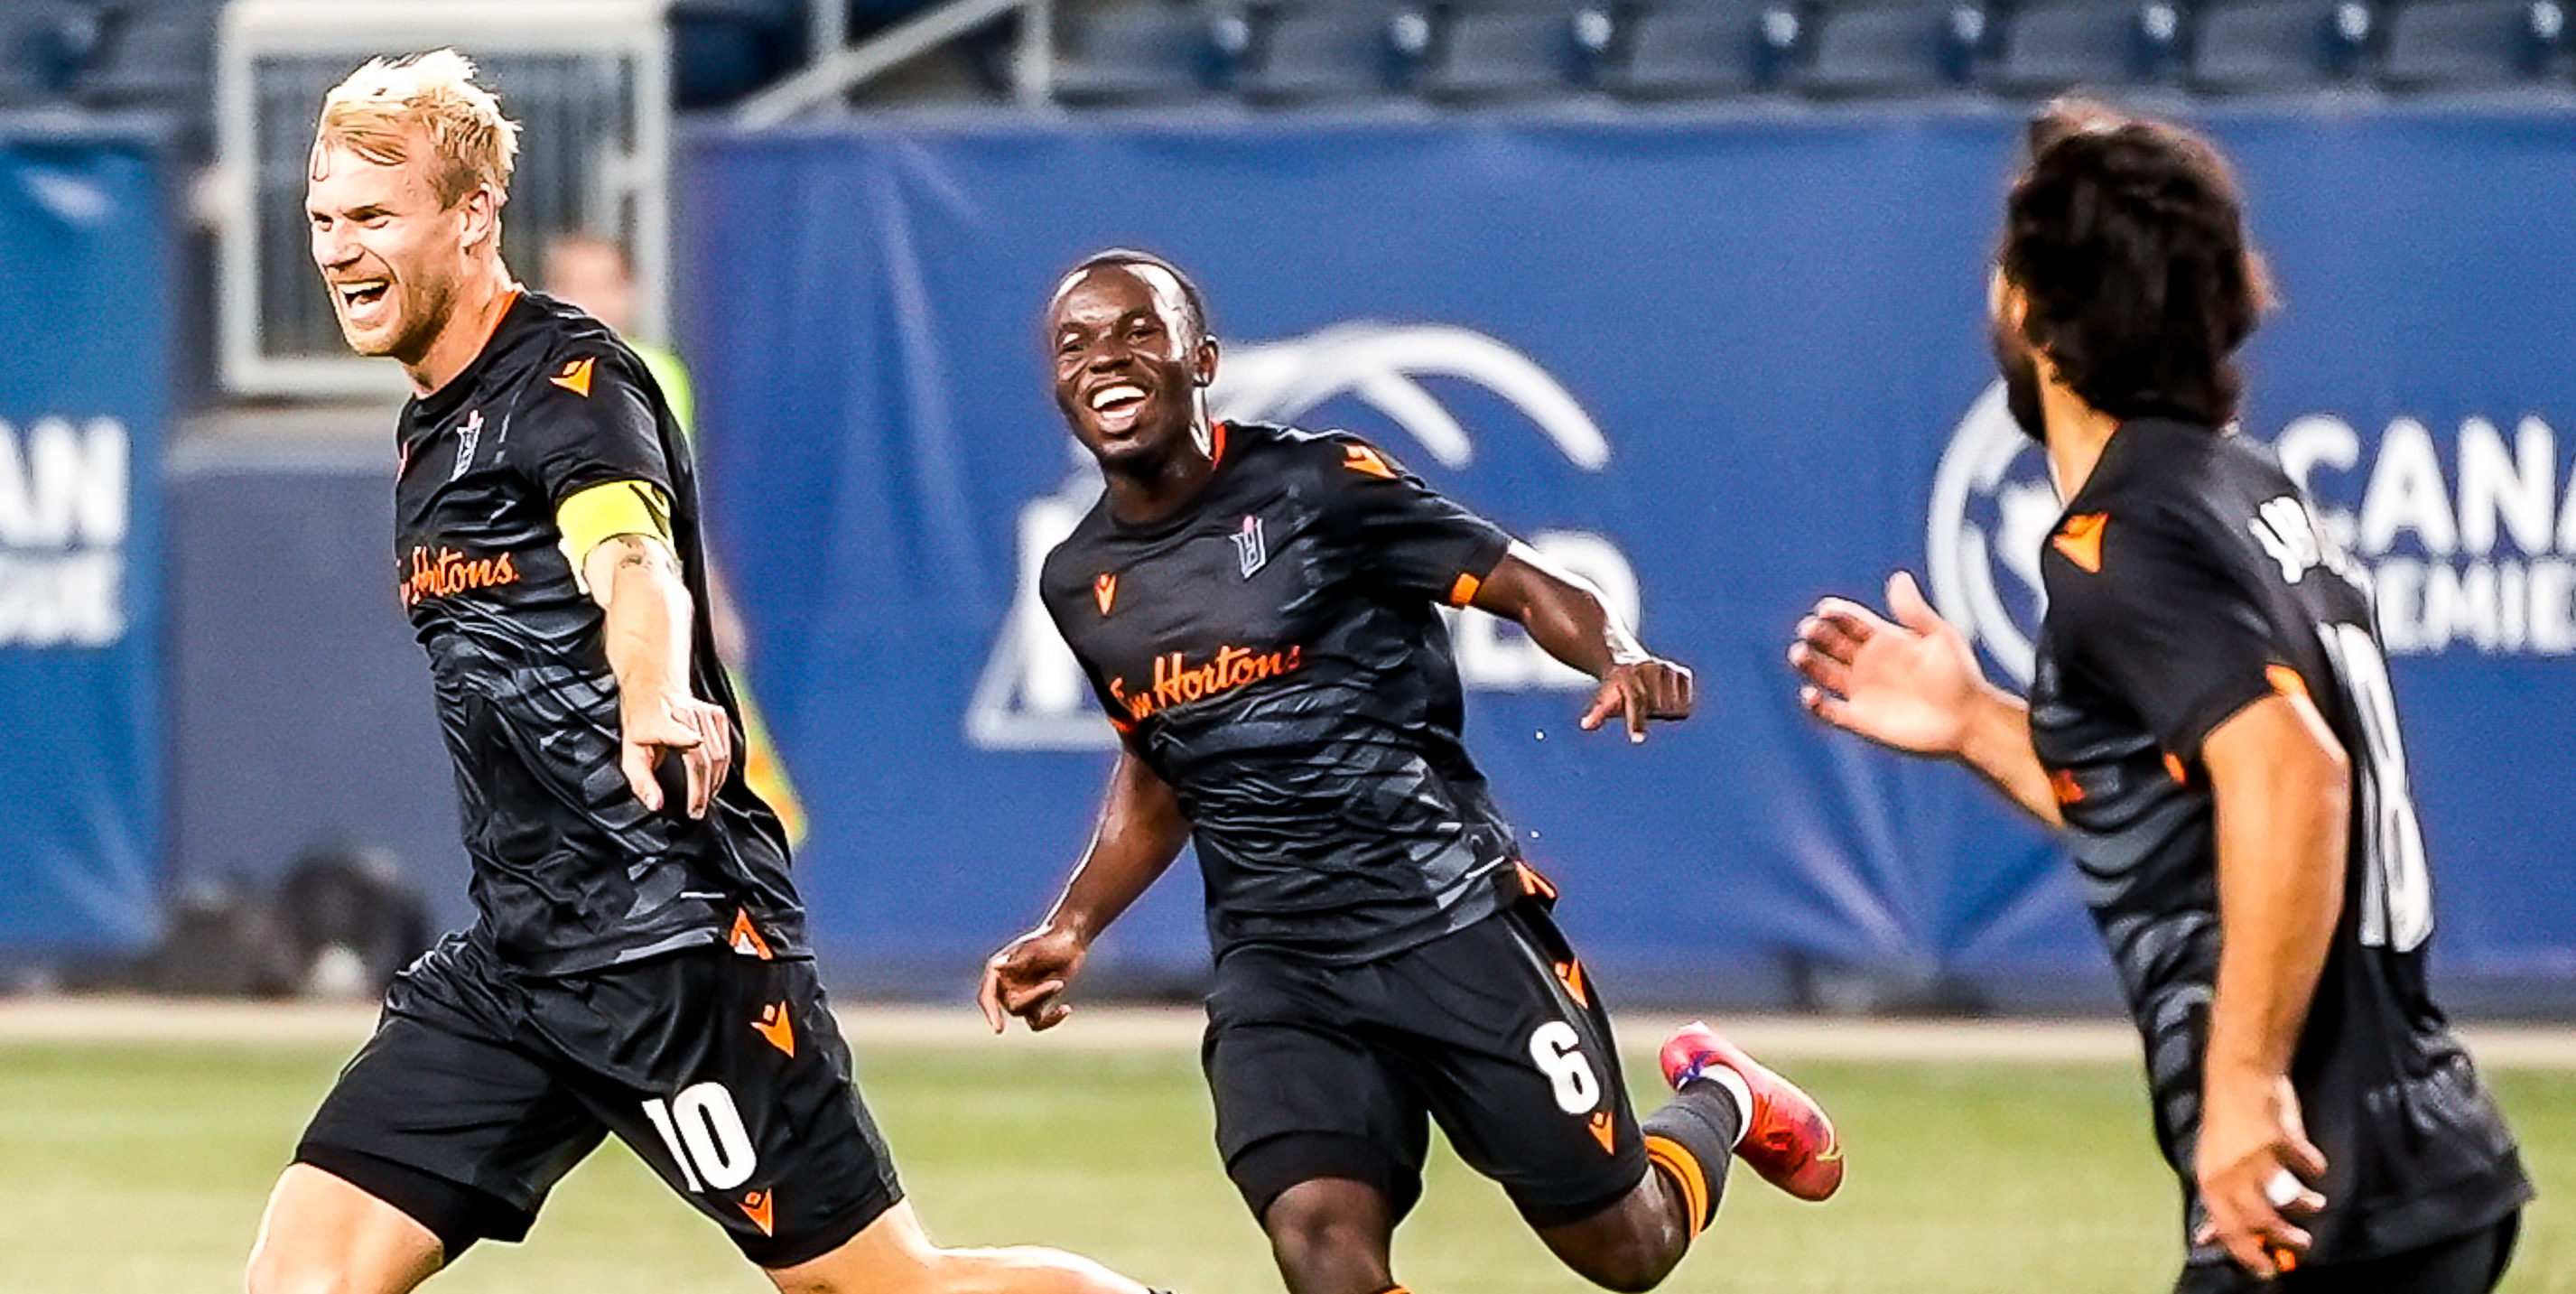 Kyle Bekker of Forge FC celebrates after scoring a goal against Pacific FC. (Photo: Canadian Premier League / Robert Reyes/William Ludwick)